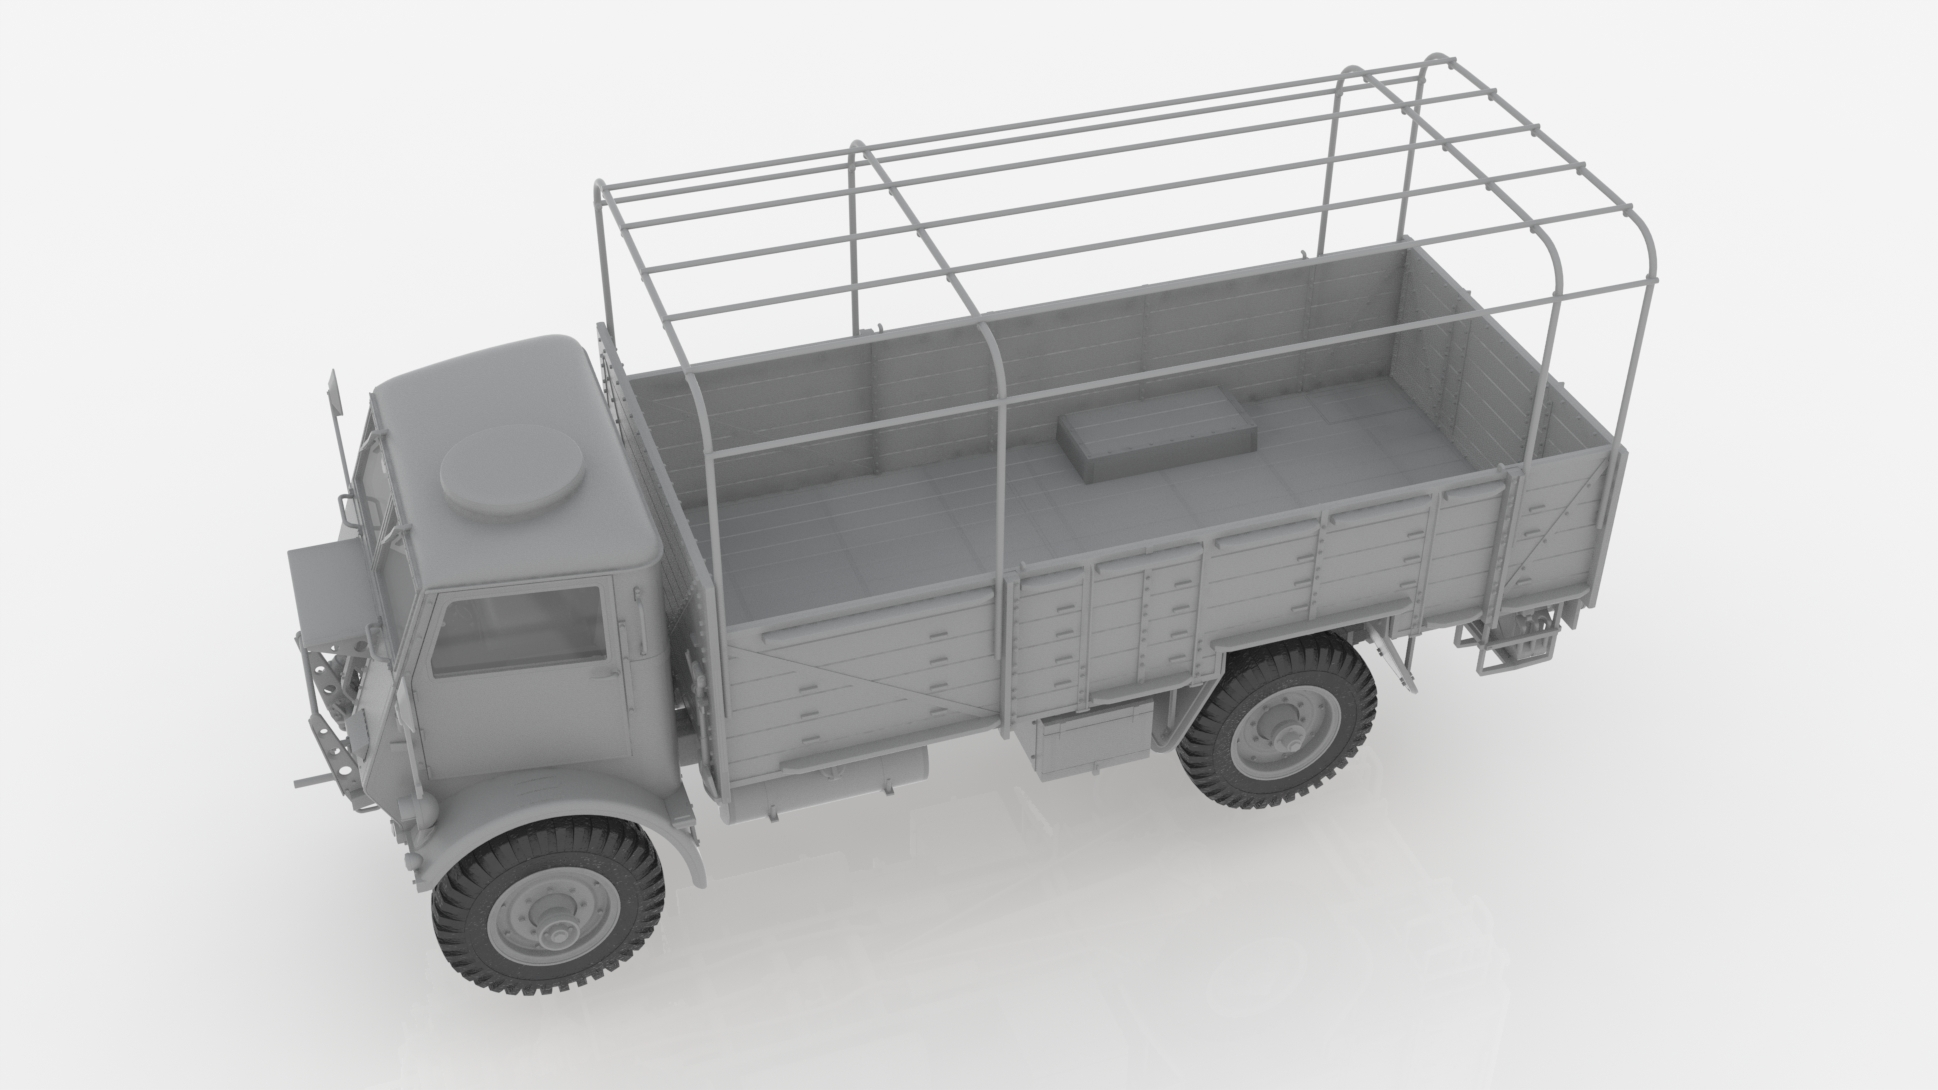 1/35 Model W.O.T. 6, WWII British Truck (100% new molds) 35507